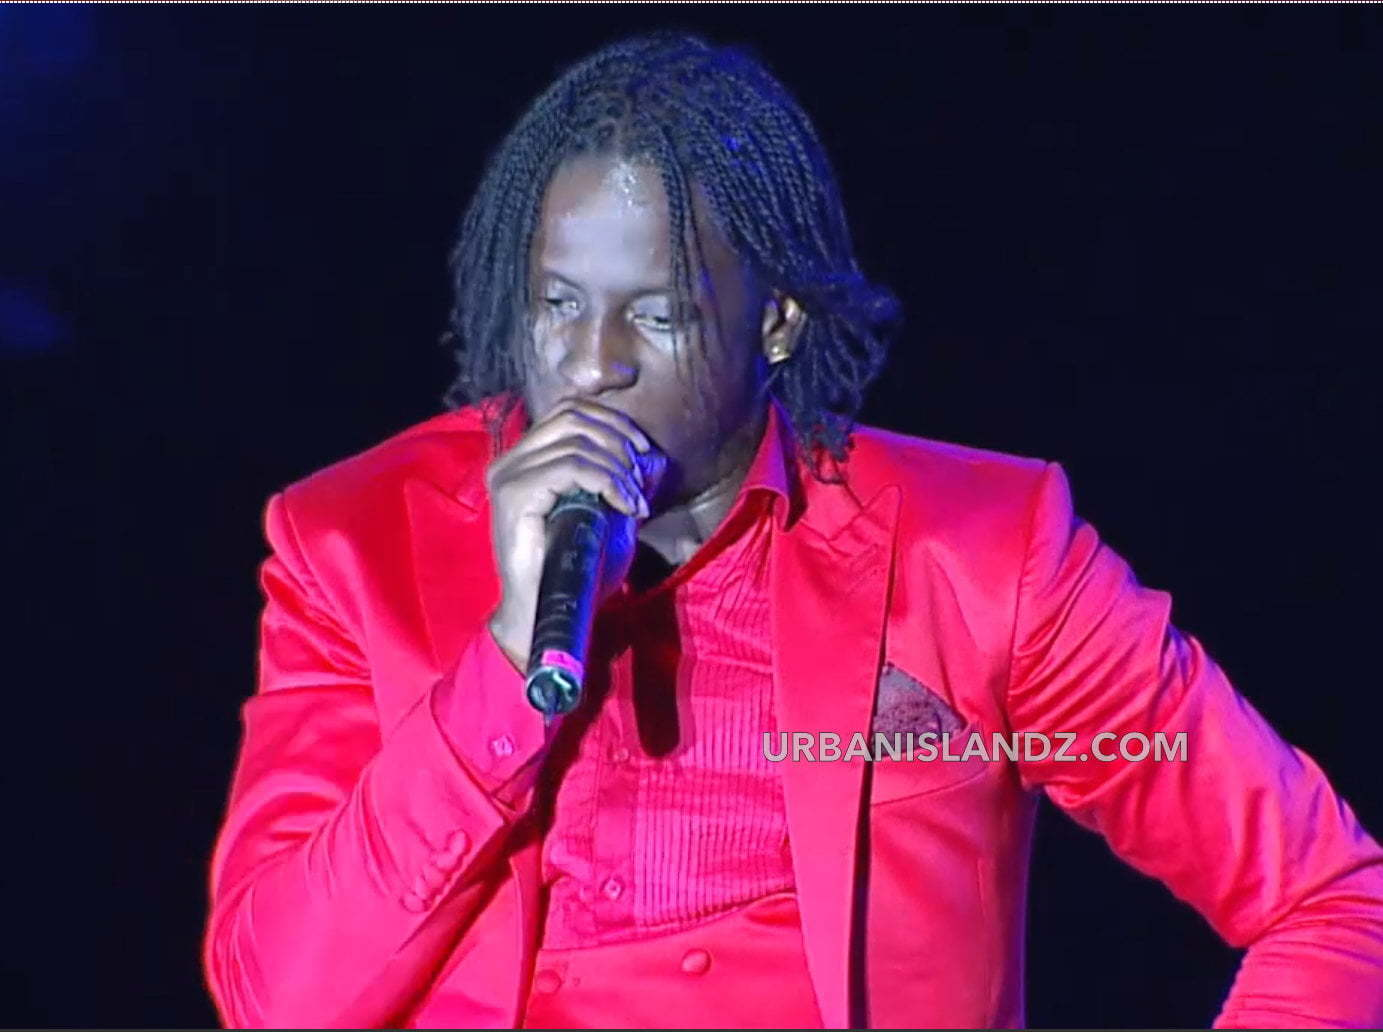 Aidonia – Fi Get Gyal (We Nuh Waste Time) [New Music]